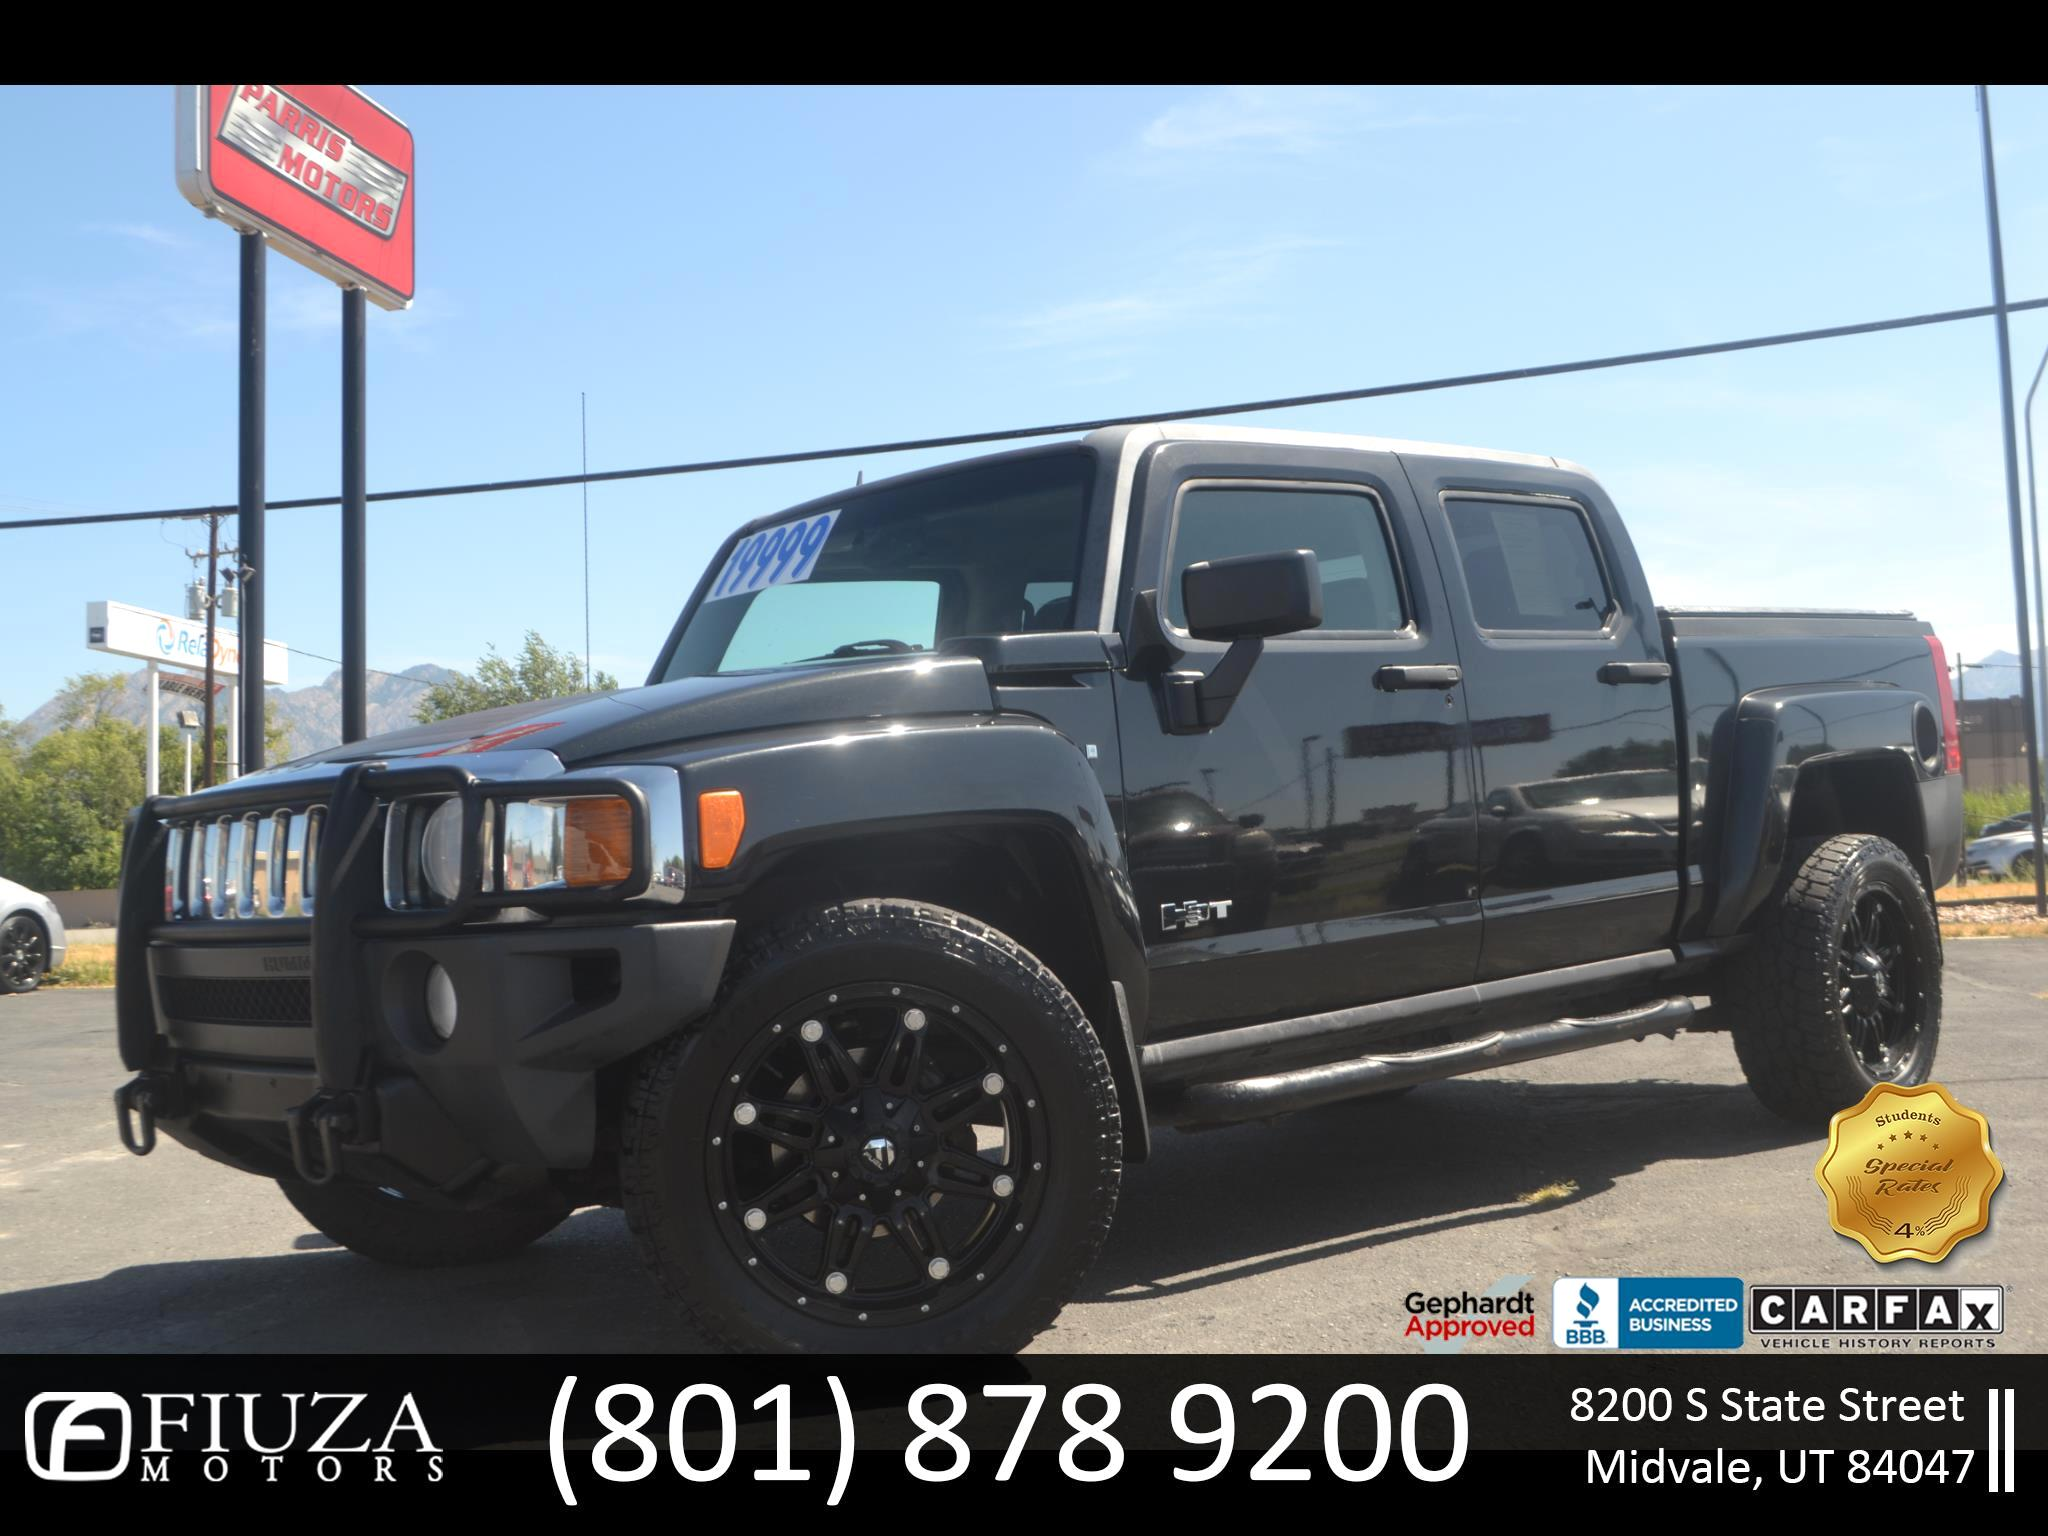 Used 14 Hummer H14T in Midvale, UT | Auto.com | 14GNEN114E14981148828 | used h3t hummer for sale